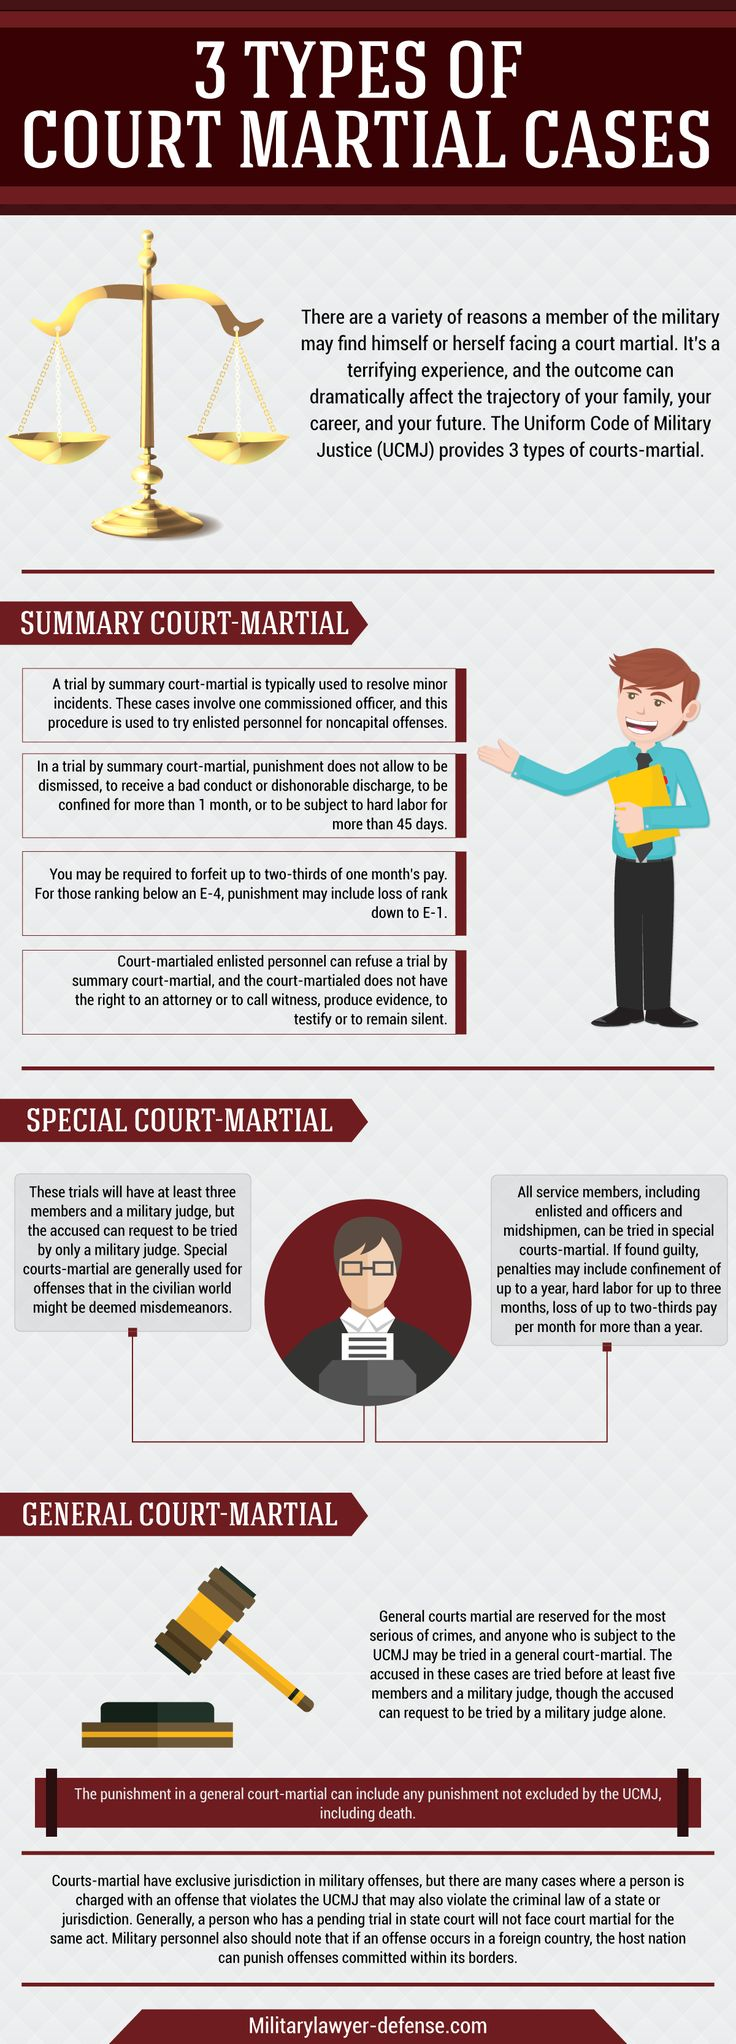 Are you facing military court martial and wondering what to expect? There are three primary types of court martial cases, and they are quite different from civil or federal court. Read on to learn more about the types of court martial cases.